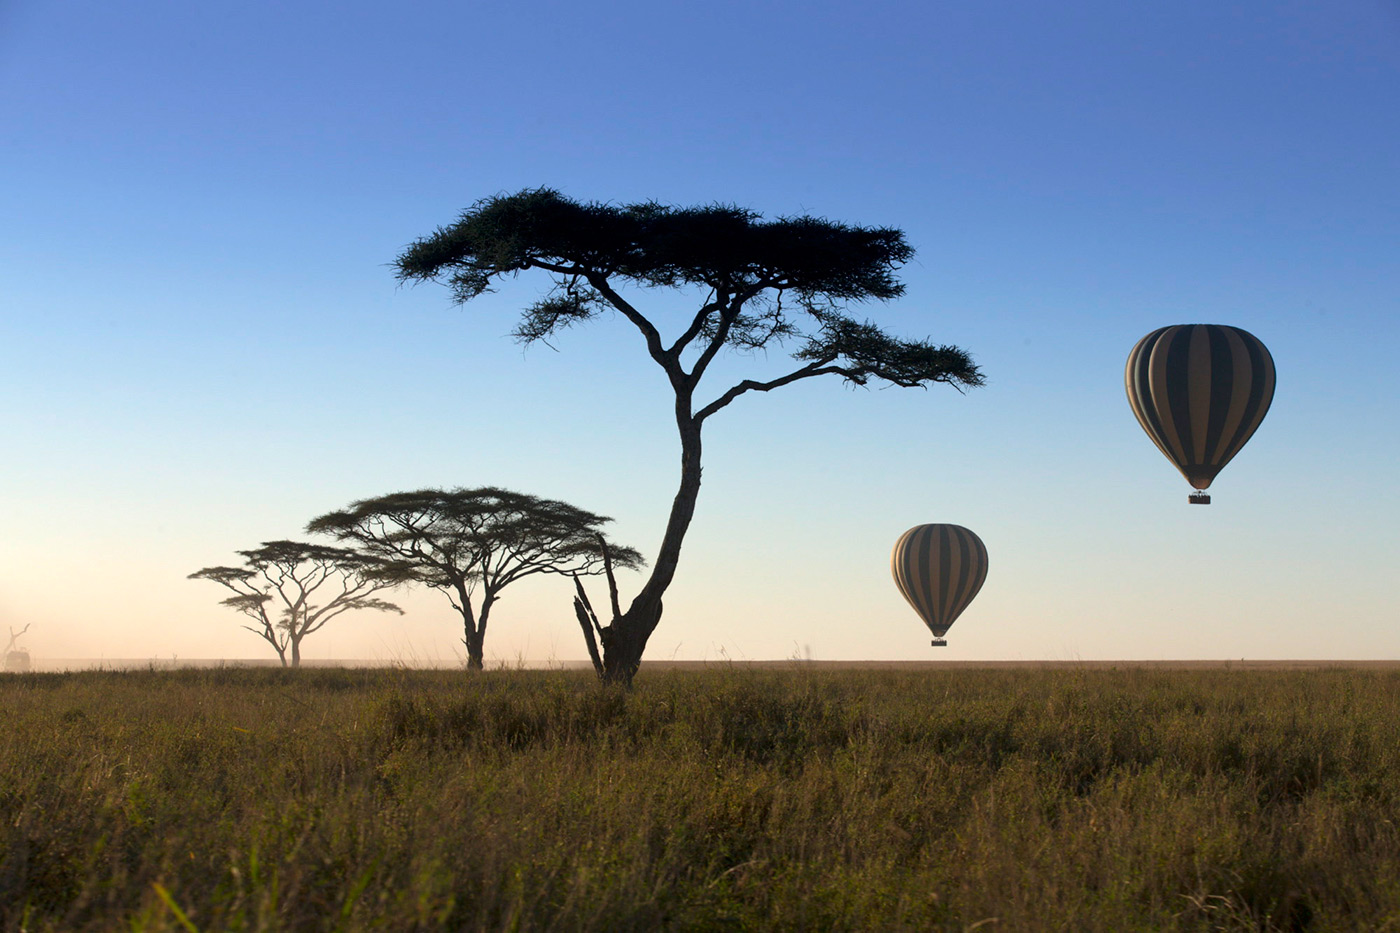 <p>Balloons floating over the desert plain in Tanzania.</p>